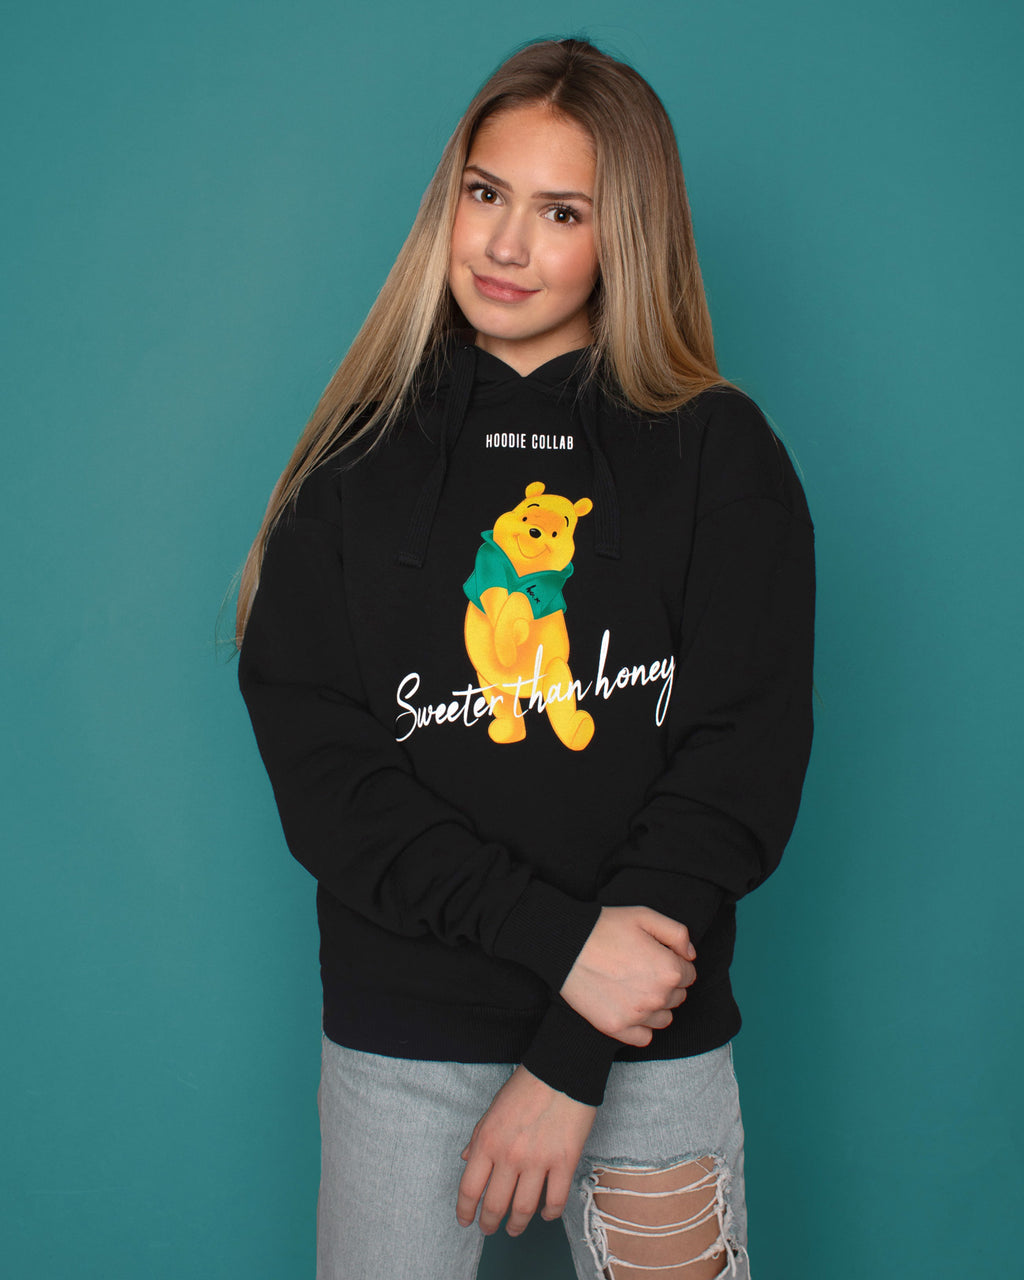 Sweeter Than Honey Hoodie - HoodieCollab